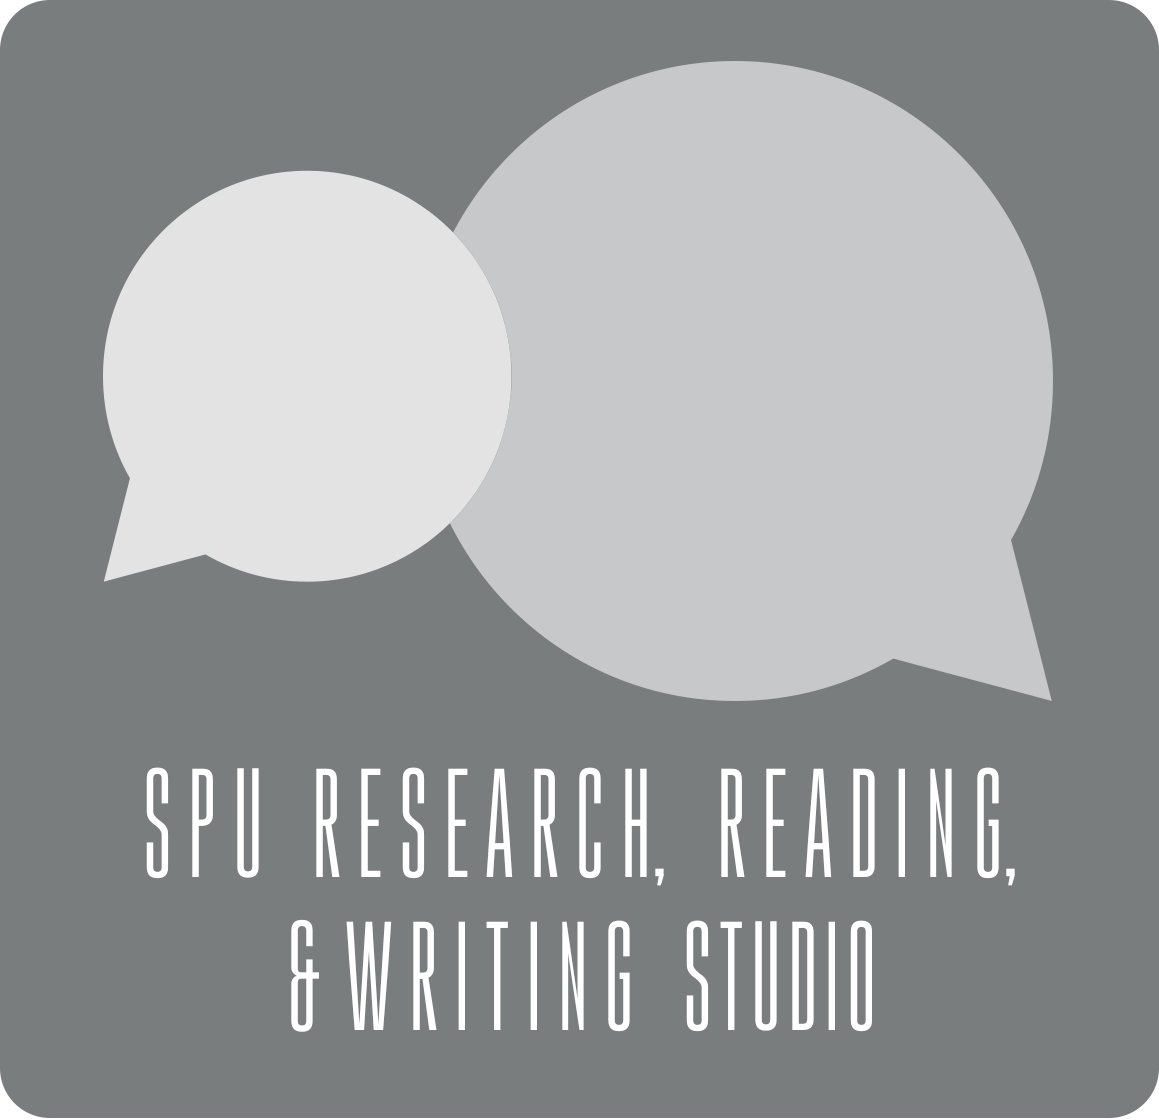 SPU Research, Reading, & Writing Studio